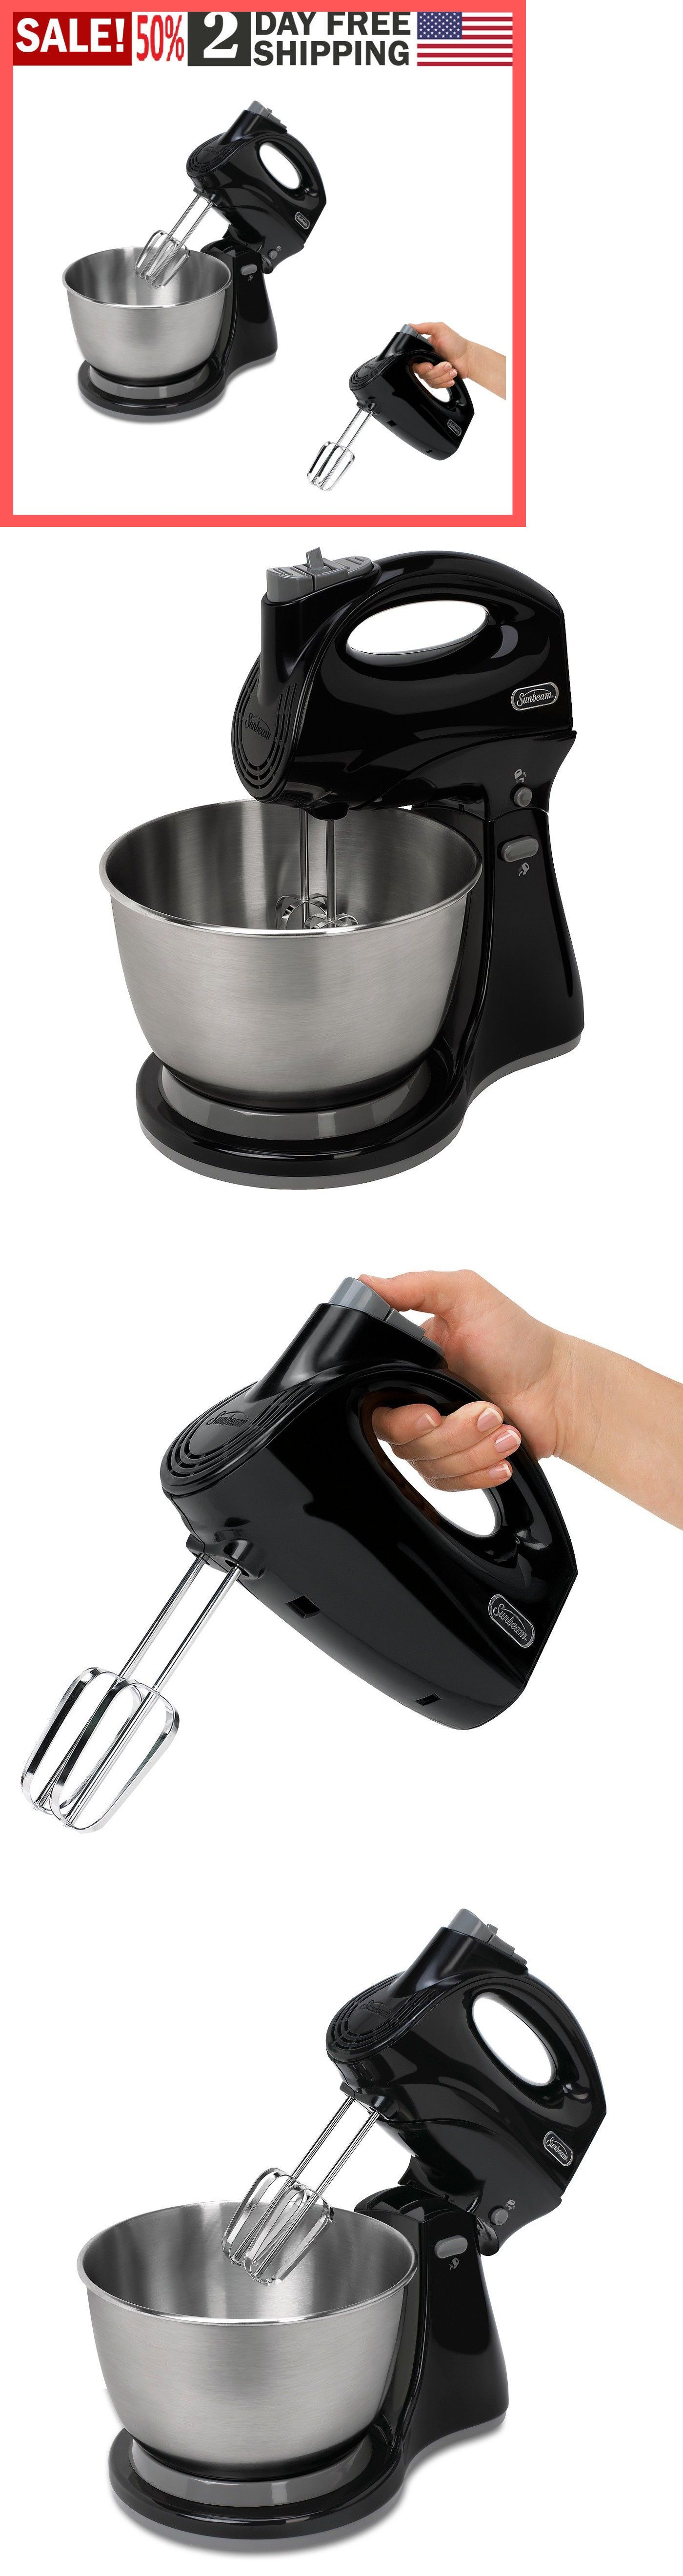 Countertop Mixers 133701 Stand Mixer 3 Quart Sunbeam Mixmaster Combo And Stand Black Fpsbhs0302 Buy It Now Only Kitchen Aid Kitchen Aid Mixer Kitchen Cups